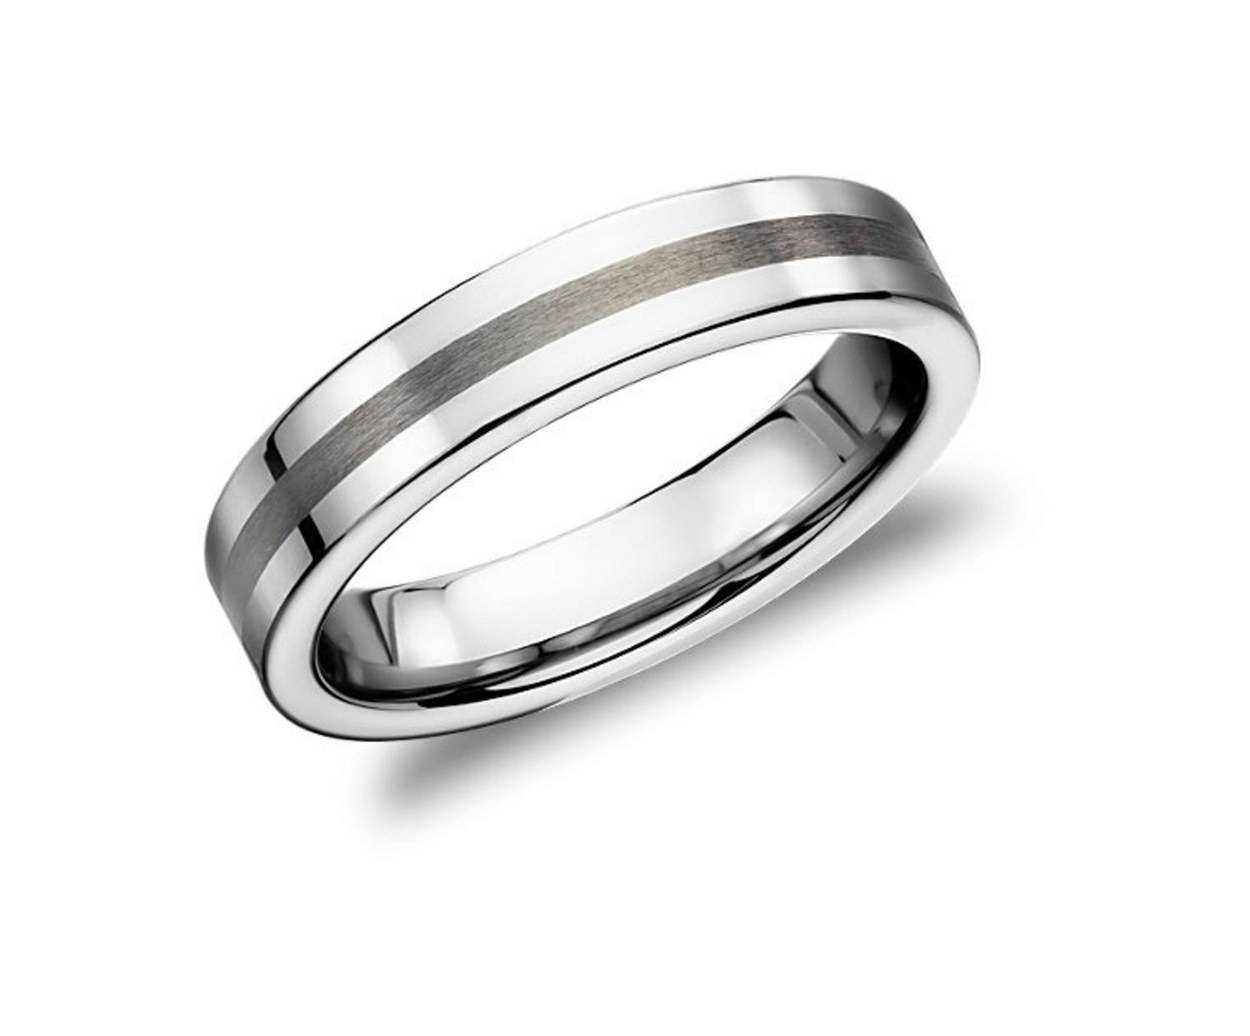 15 Men's Wedding Bands Your Groom Won't Want To Take Off | Glamour Throughout Square Mens Wedding Rings (View 2 of 15)